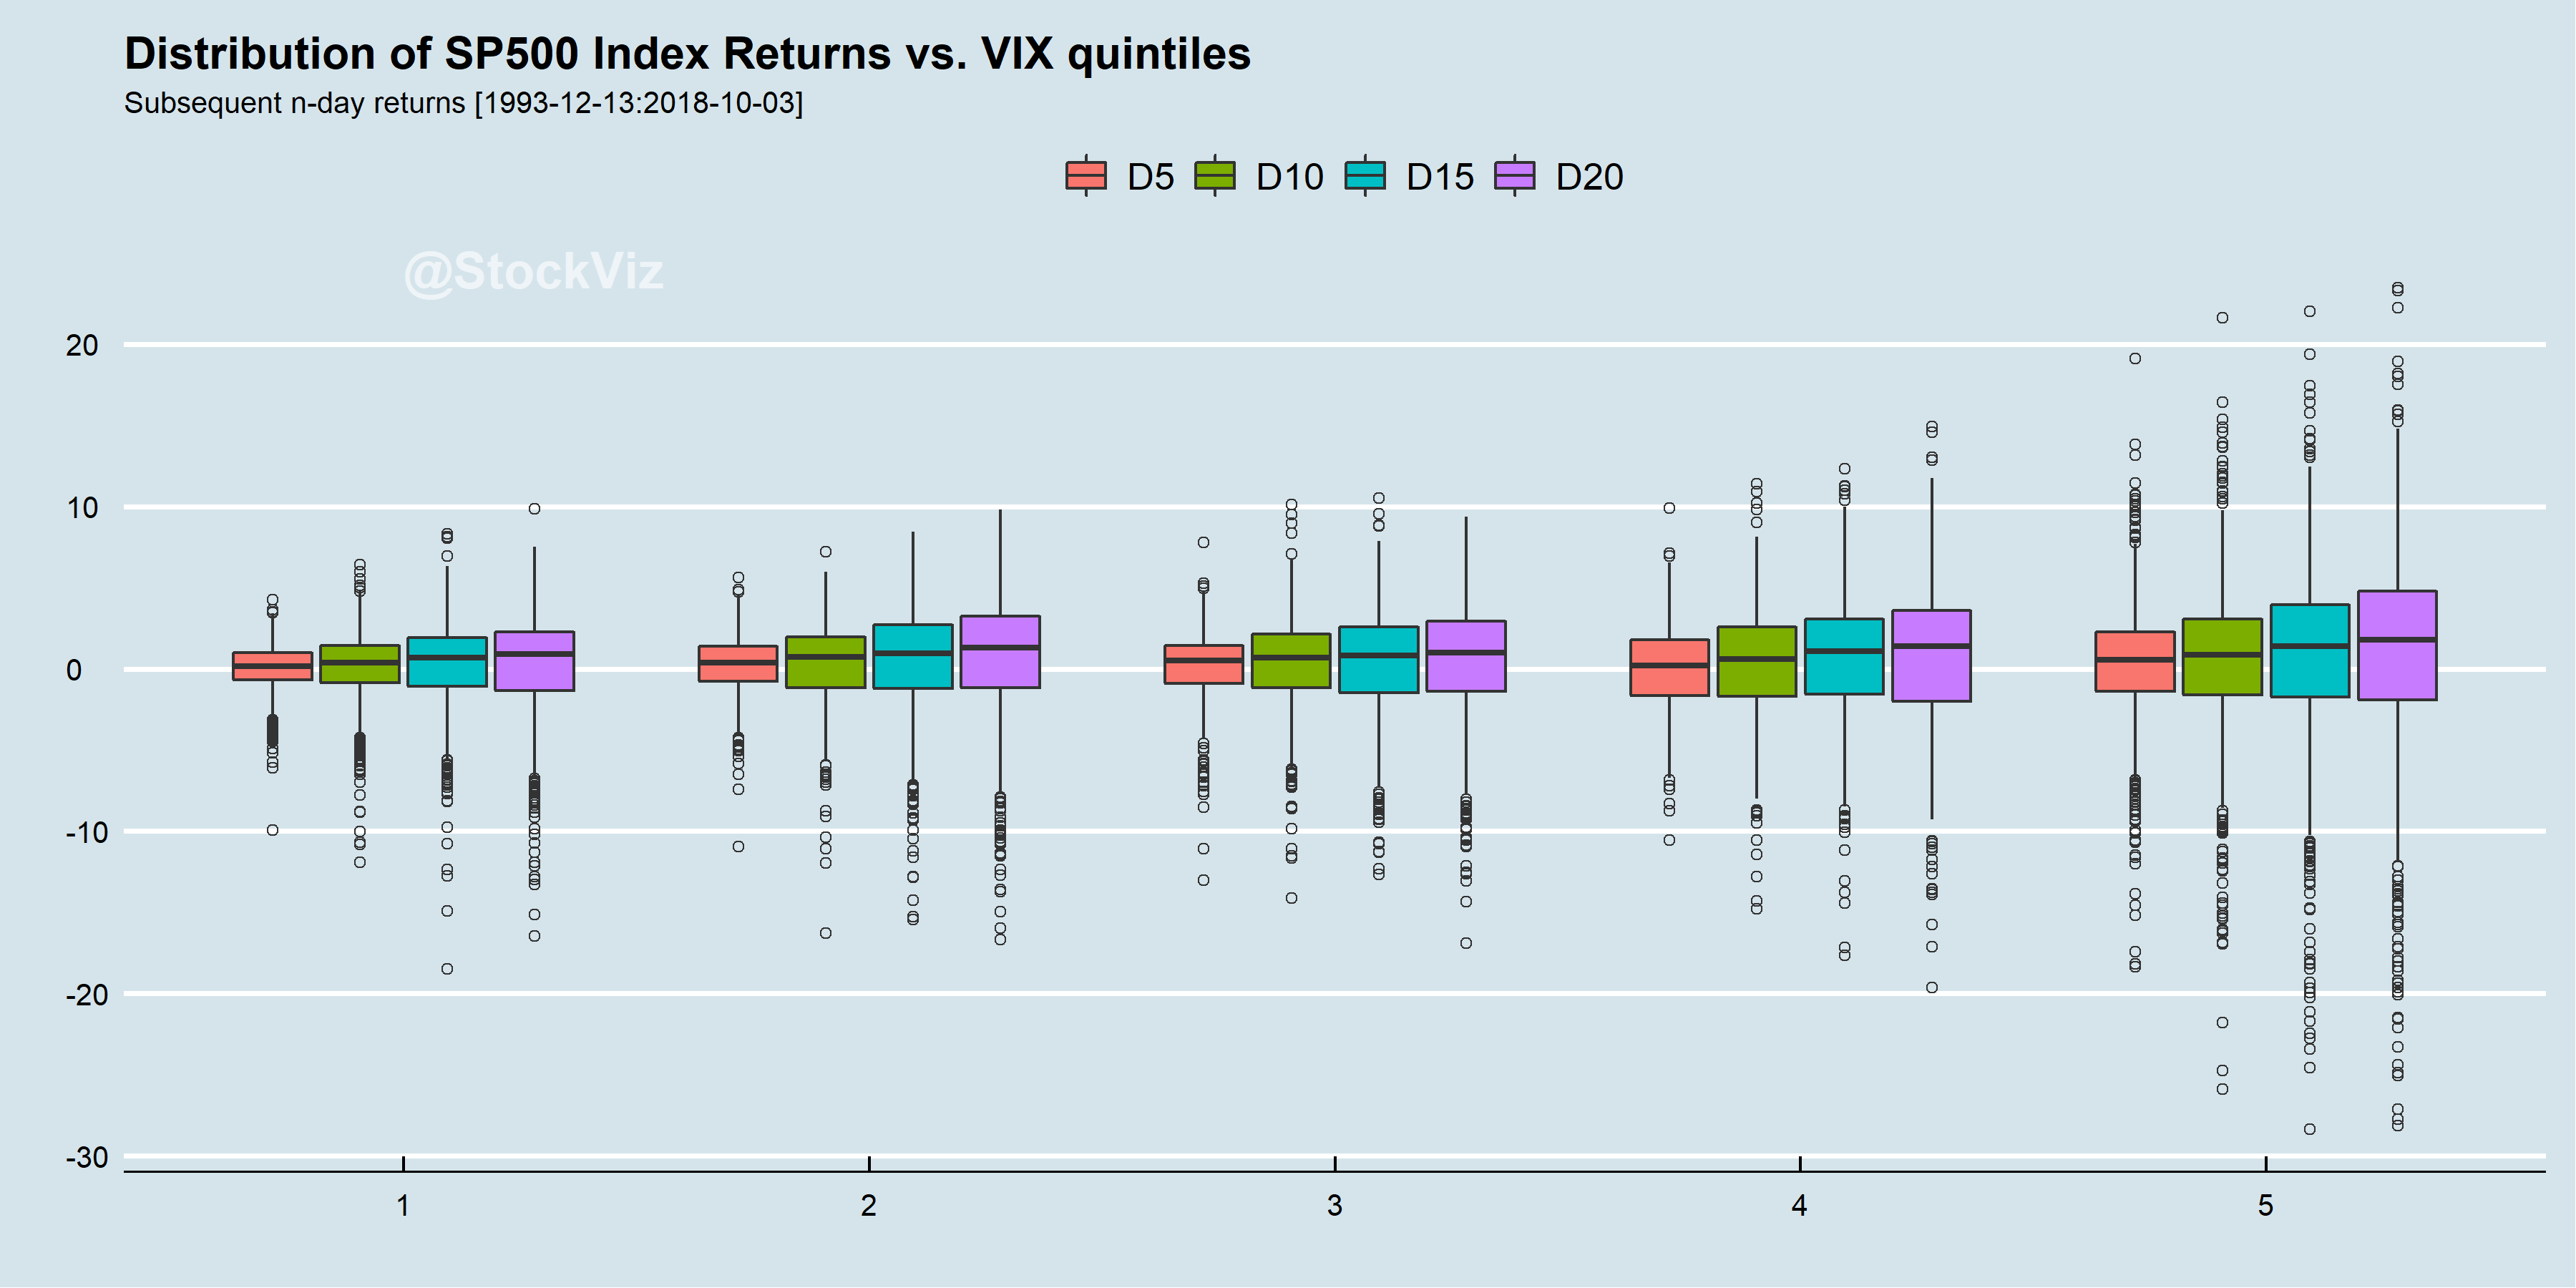 SP500 returns over VIX quintiles